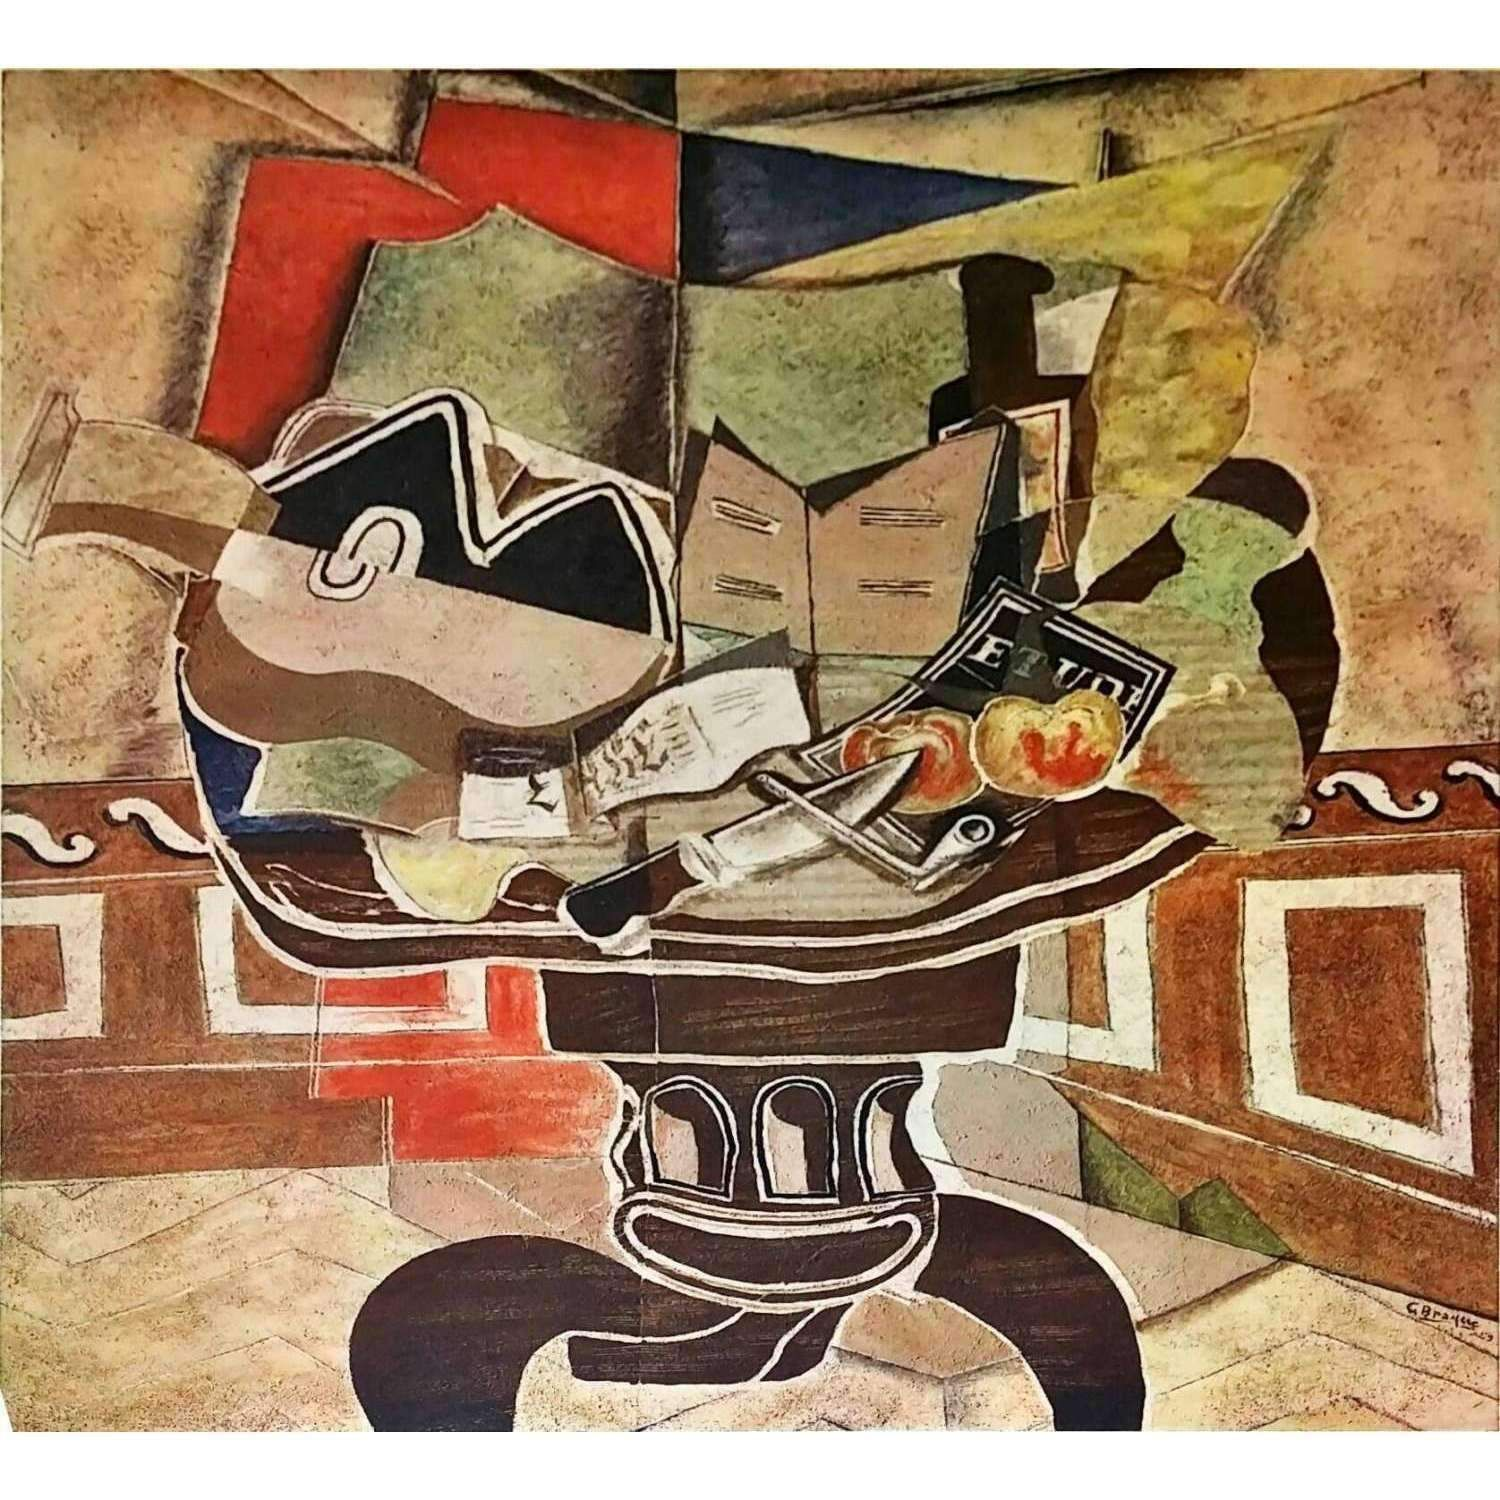 Classic Framed Pablo Picasso Fruit Dish Bottle and Violin Giclee Canvas Print